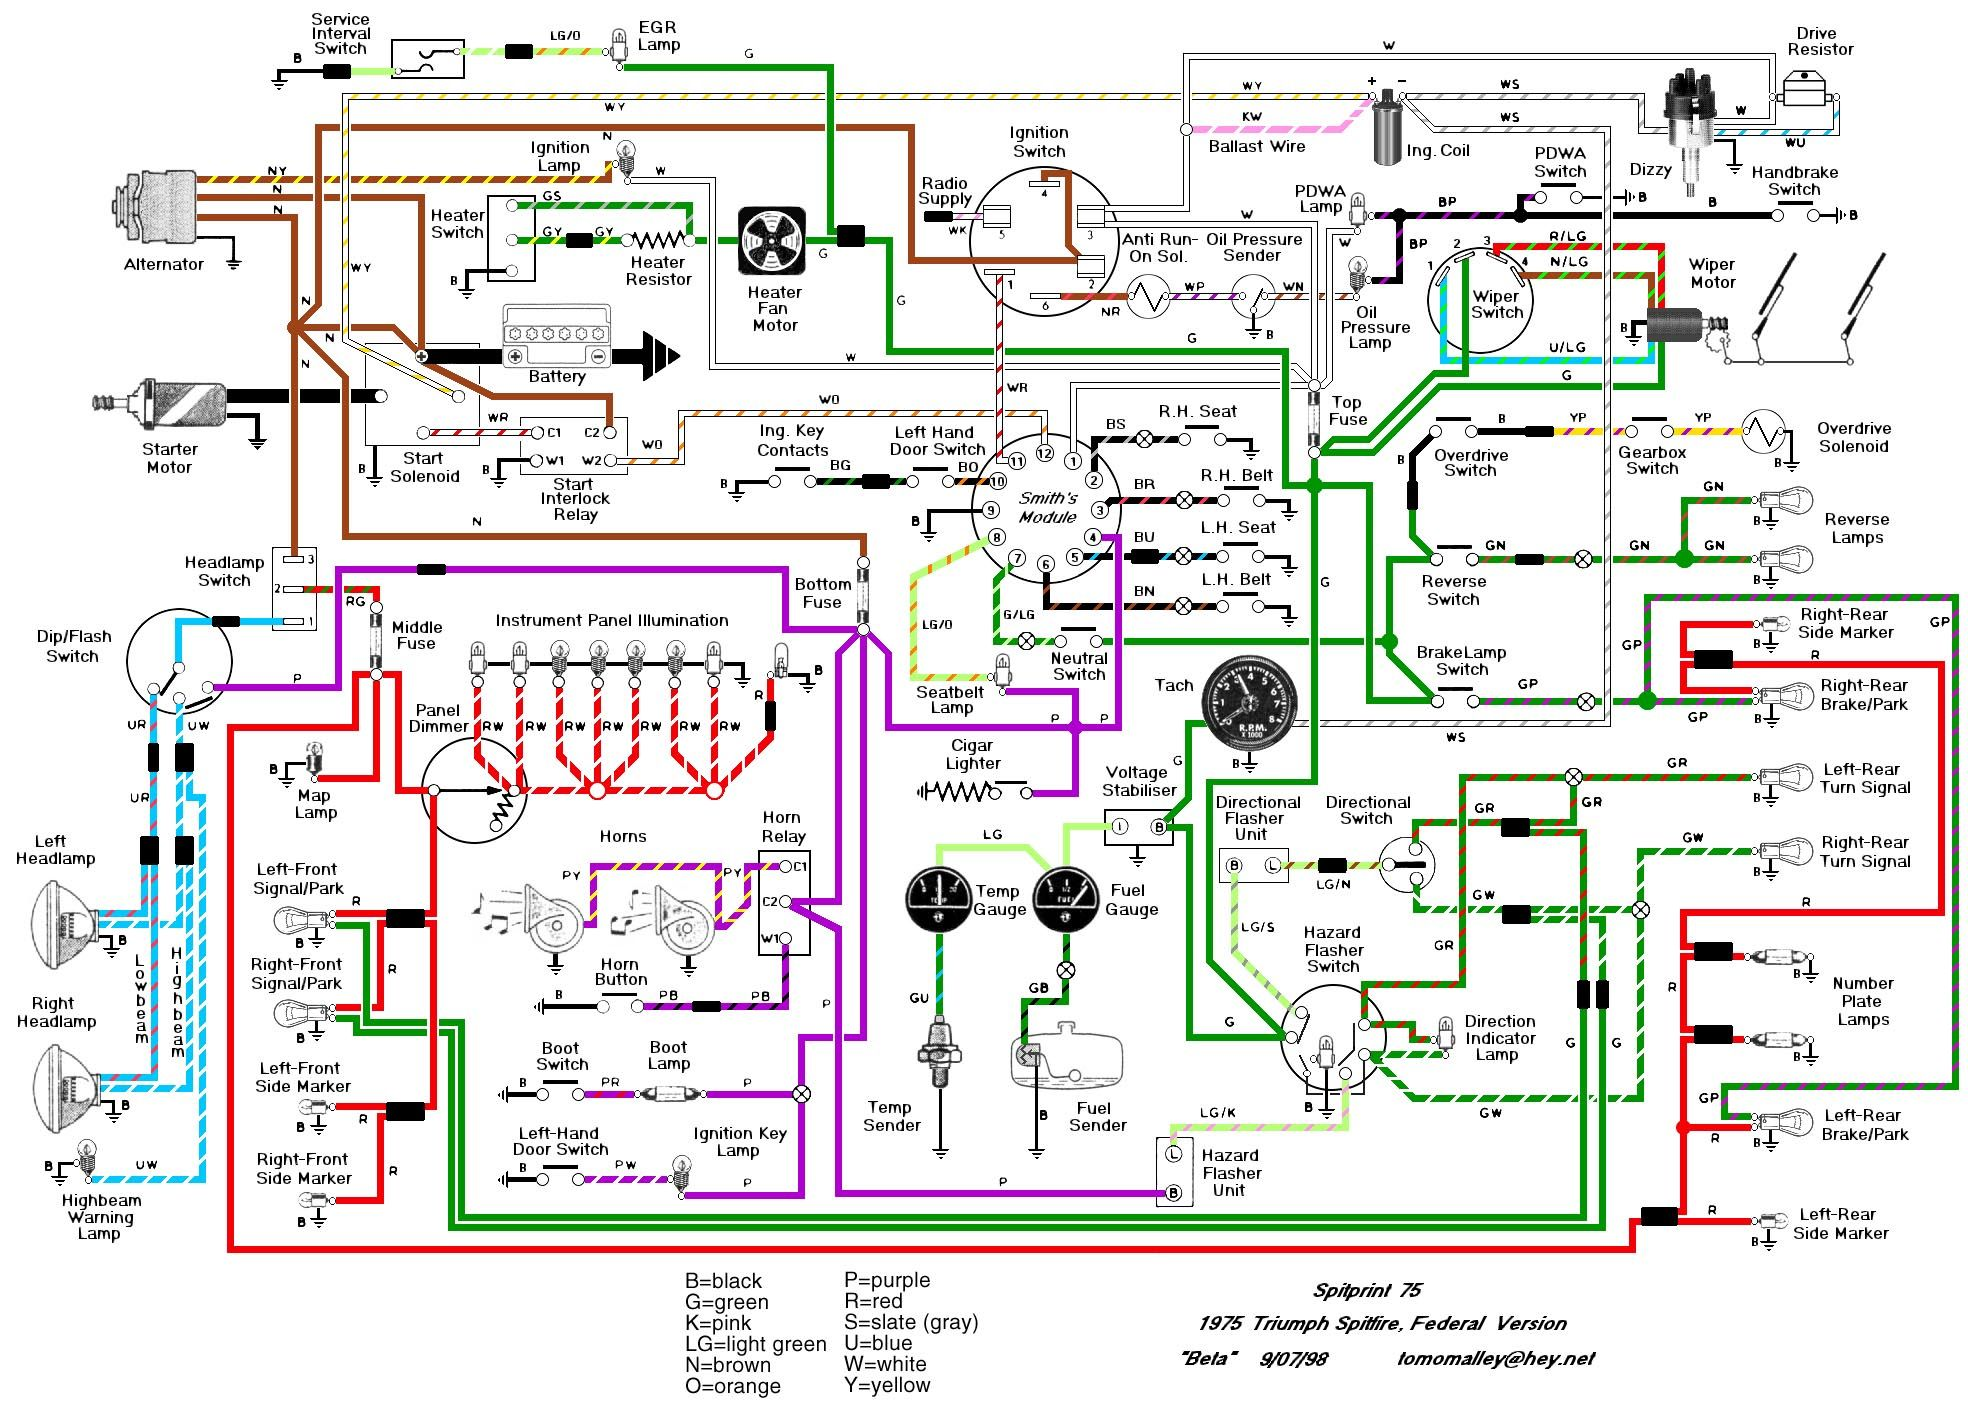 images about auto manual  s wiring diagram on pinterest        images about auto manual parts wiring diagram on pinterest   guitar  electrical wiring diagram and symbols